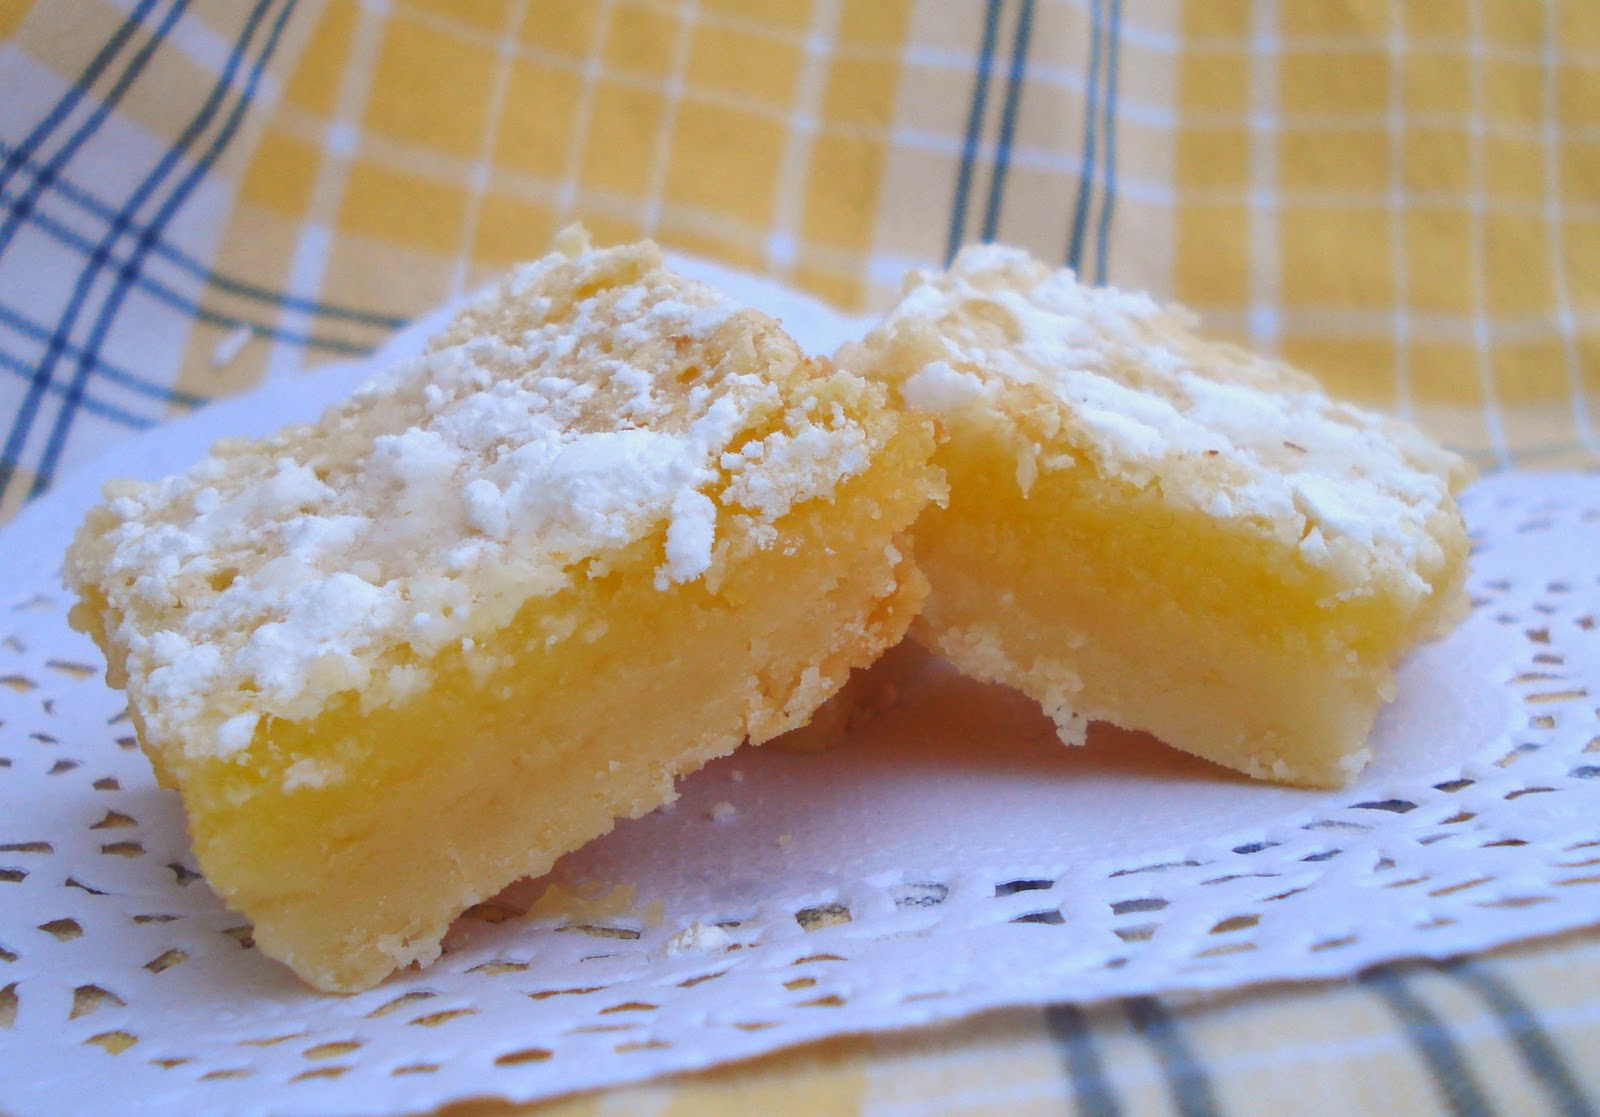 ... 344: Where We Learned to Live, Love, and Cook: The Best Lemon Bars